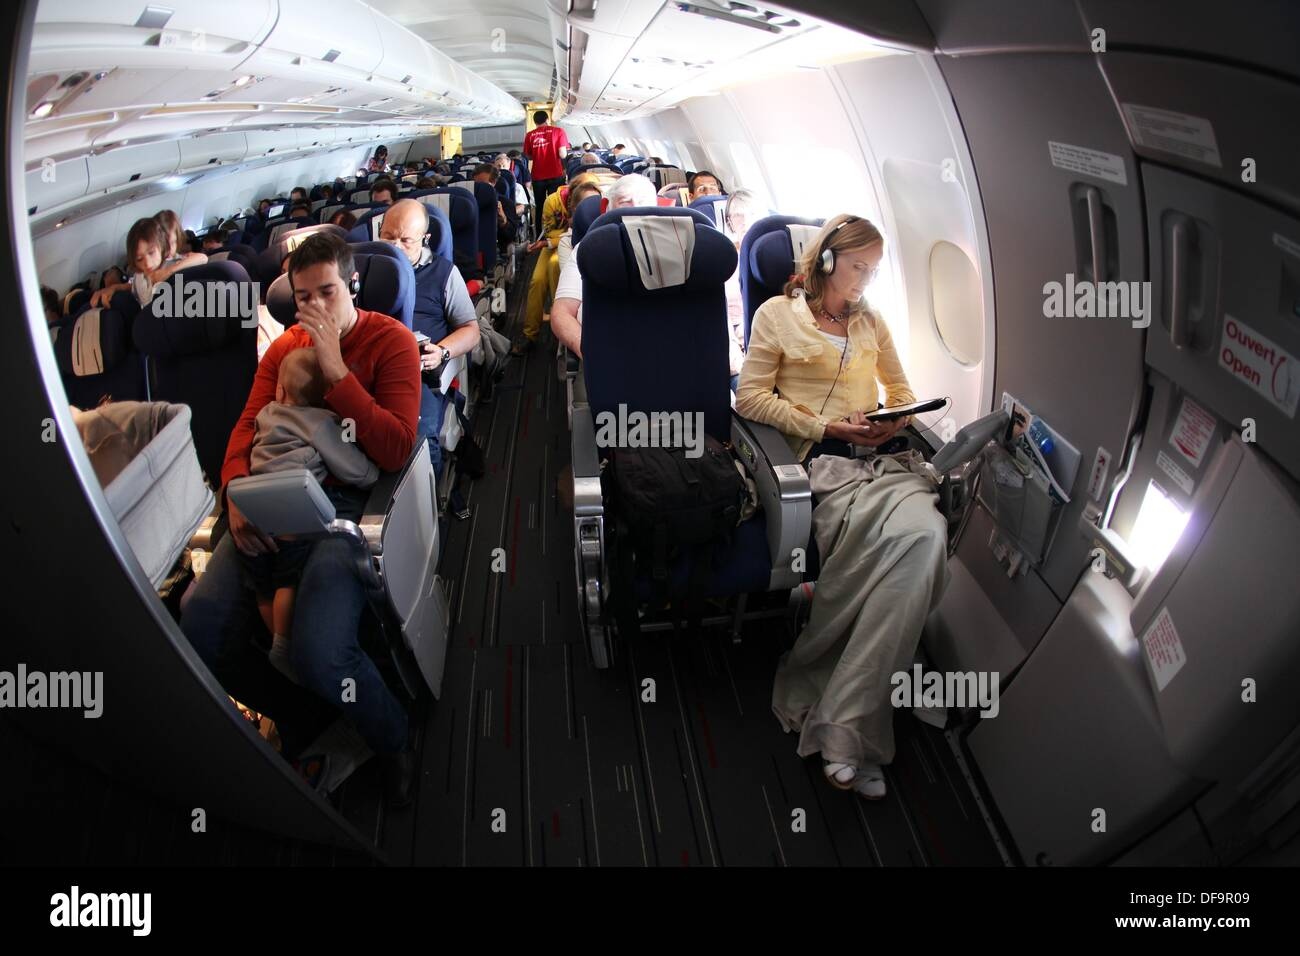 Passengers on an airplane - Stock Image